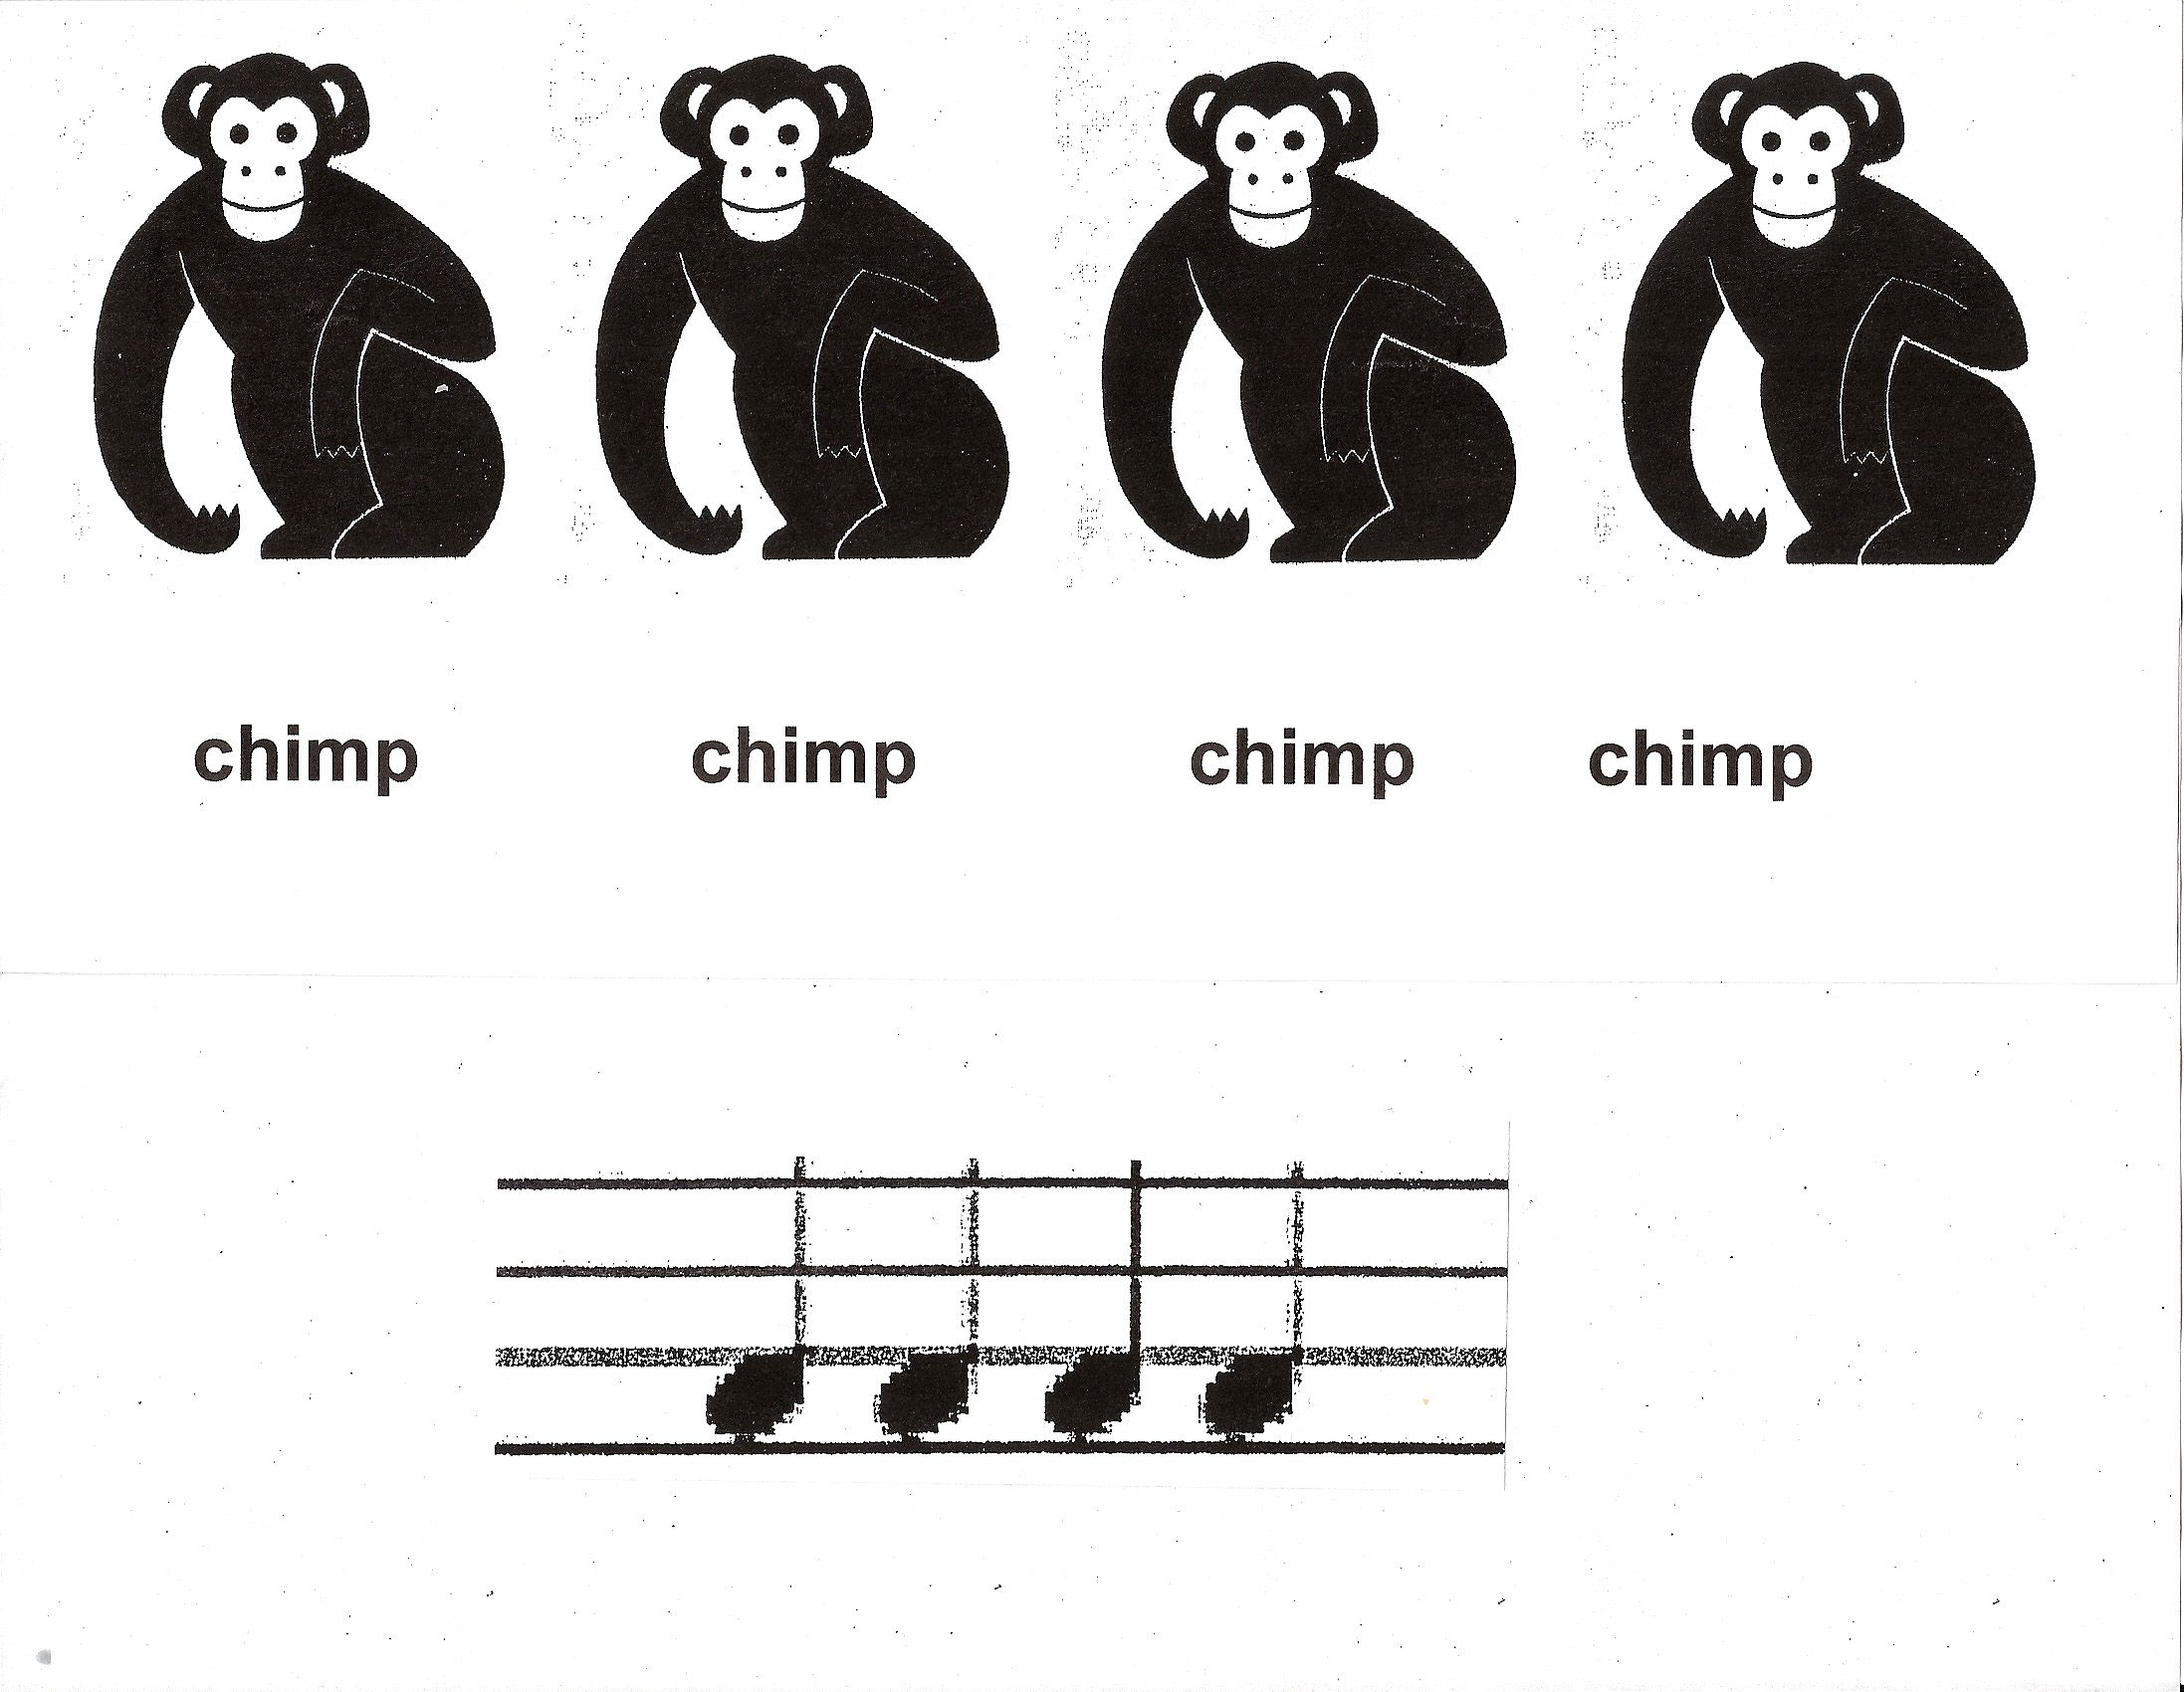 interesting method for teaching rhythm to young children